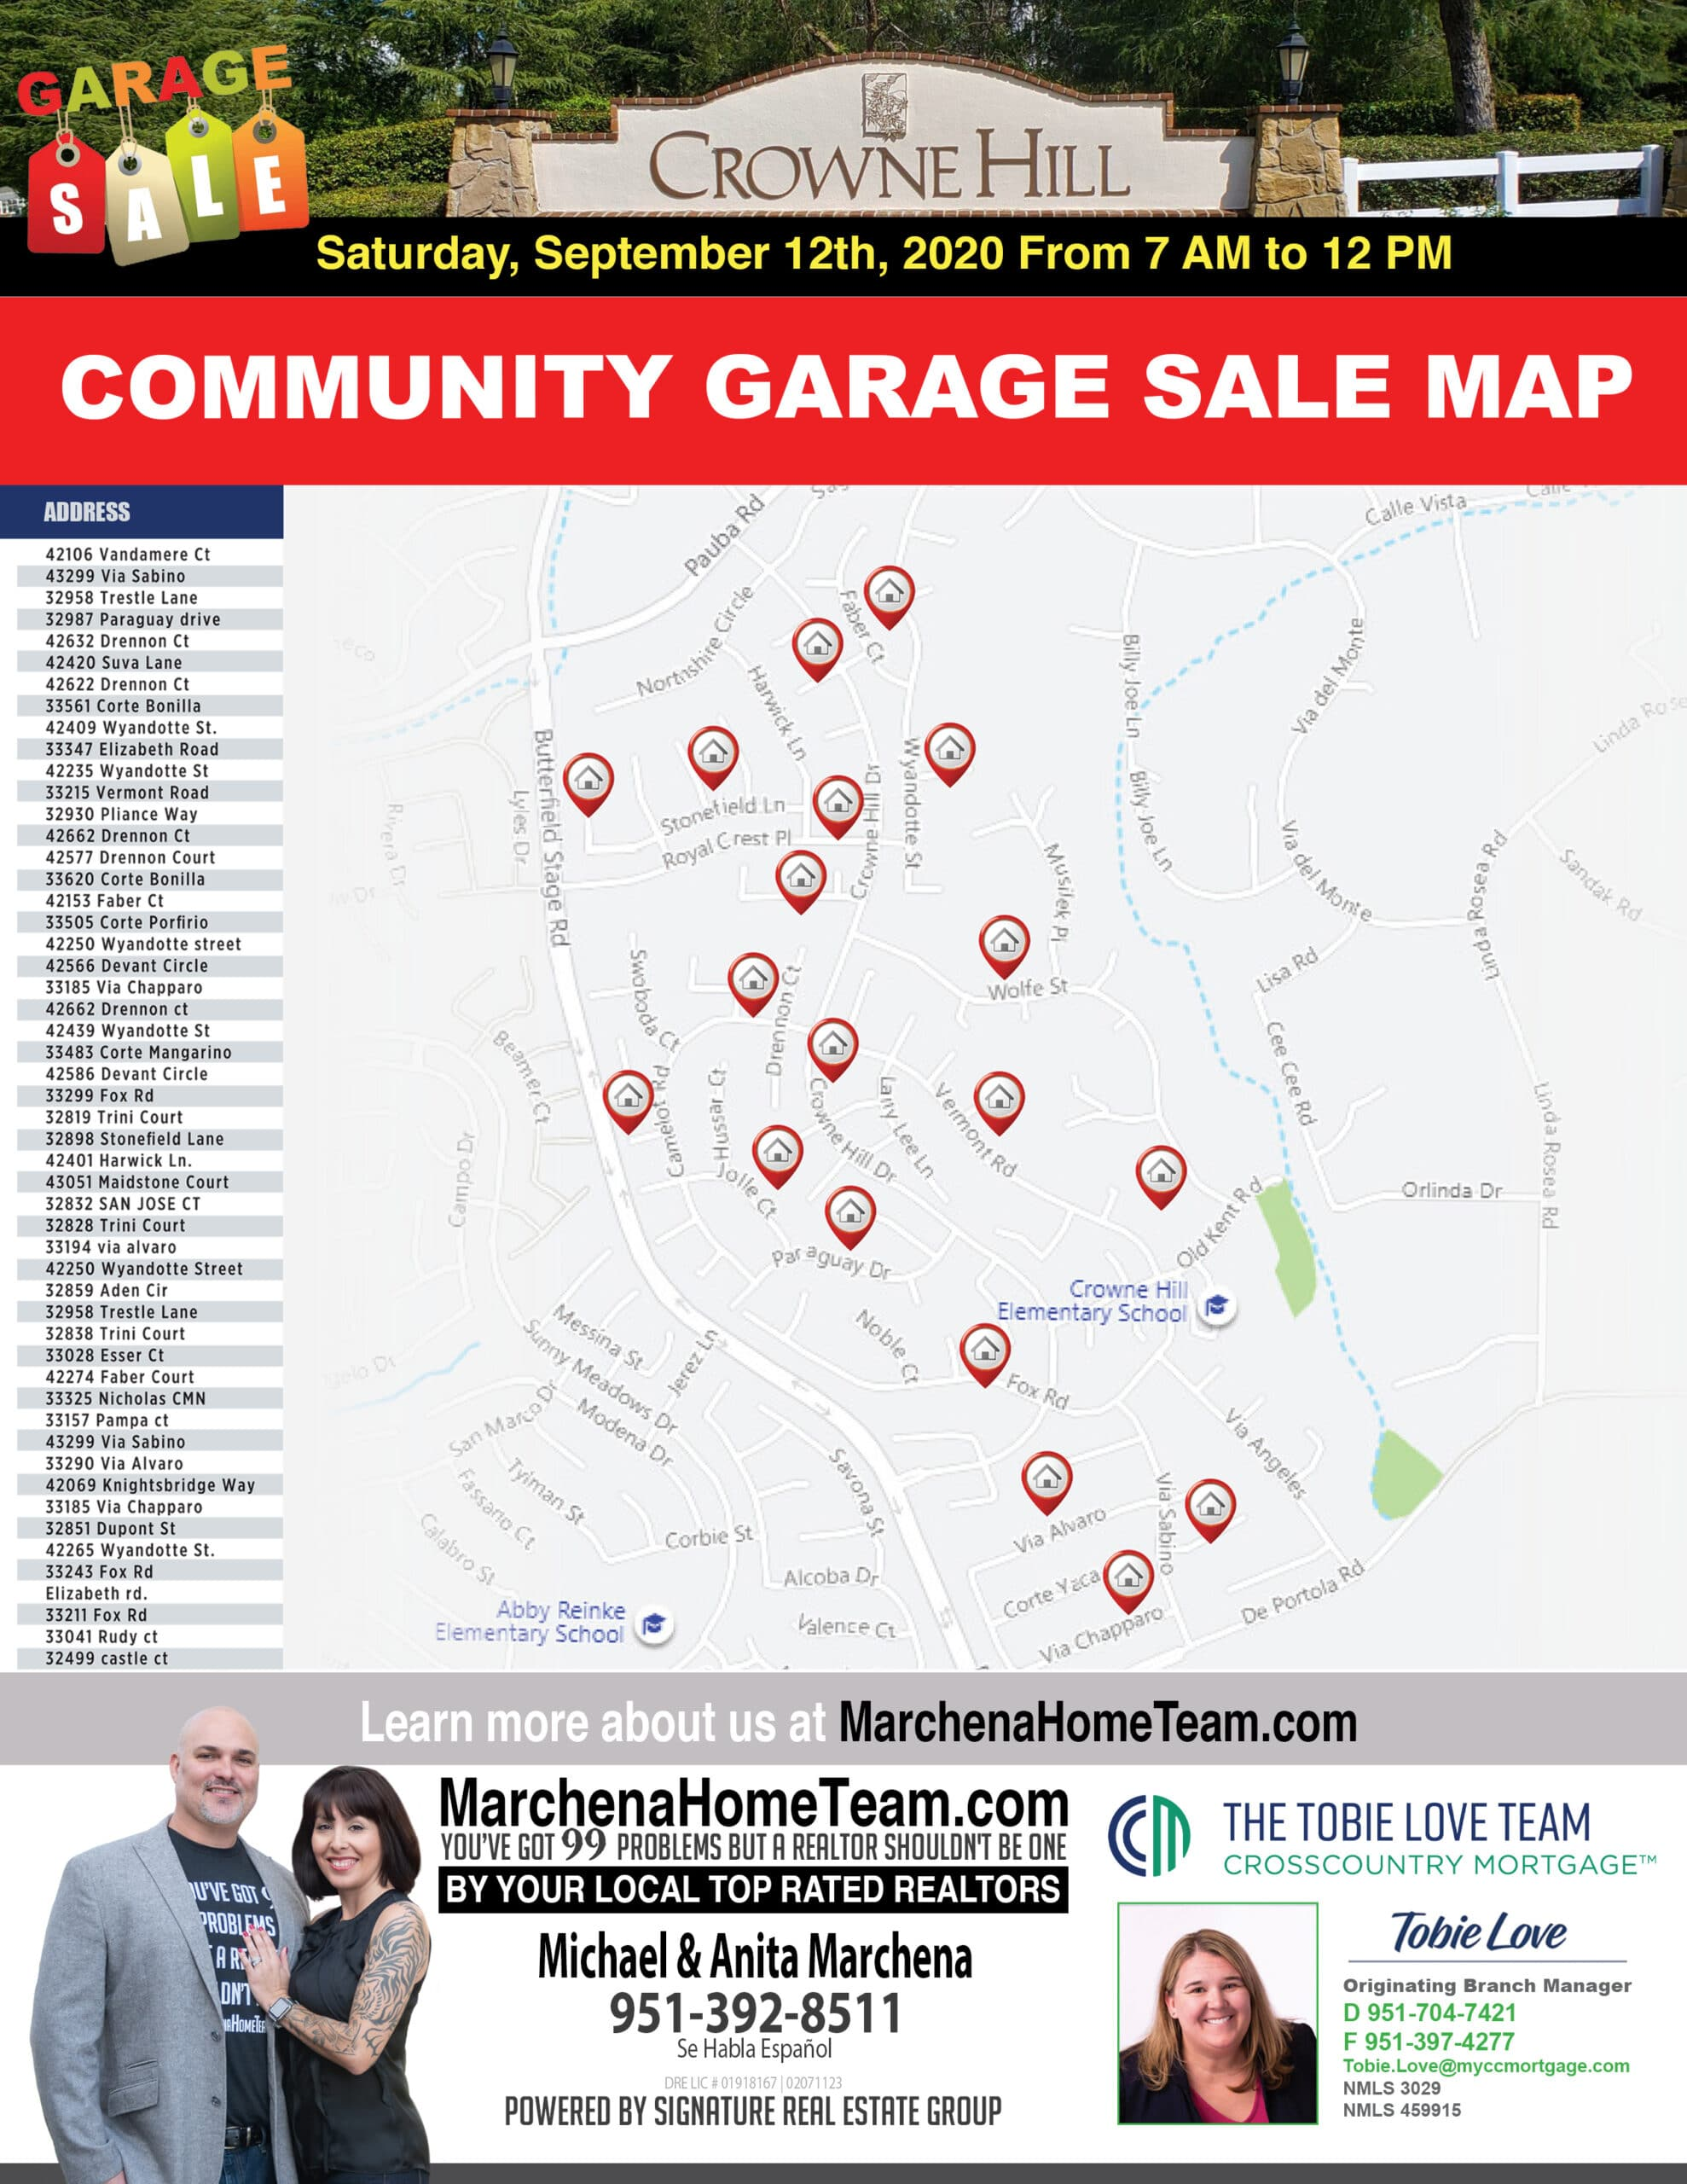 Crowne Hill Community Garage Sale